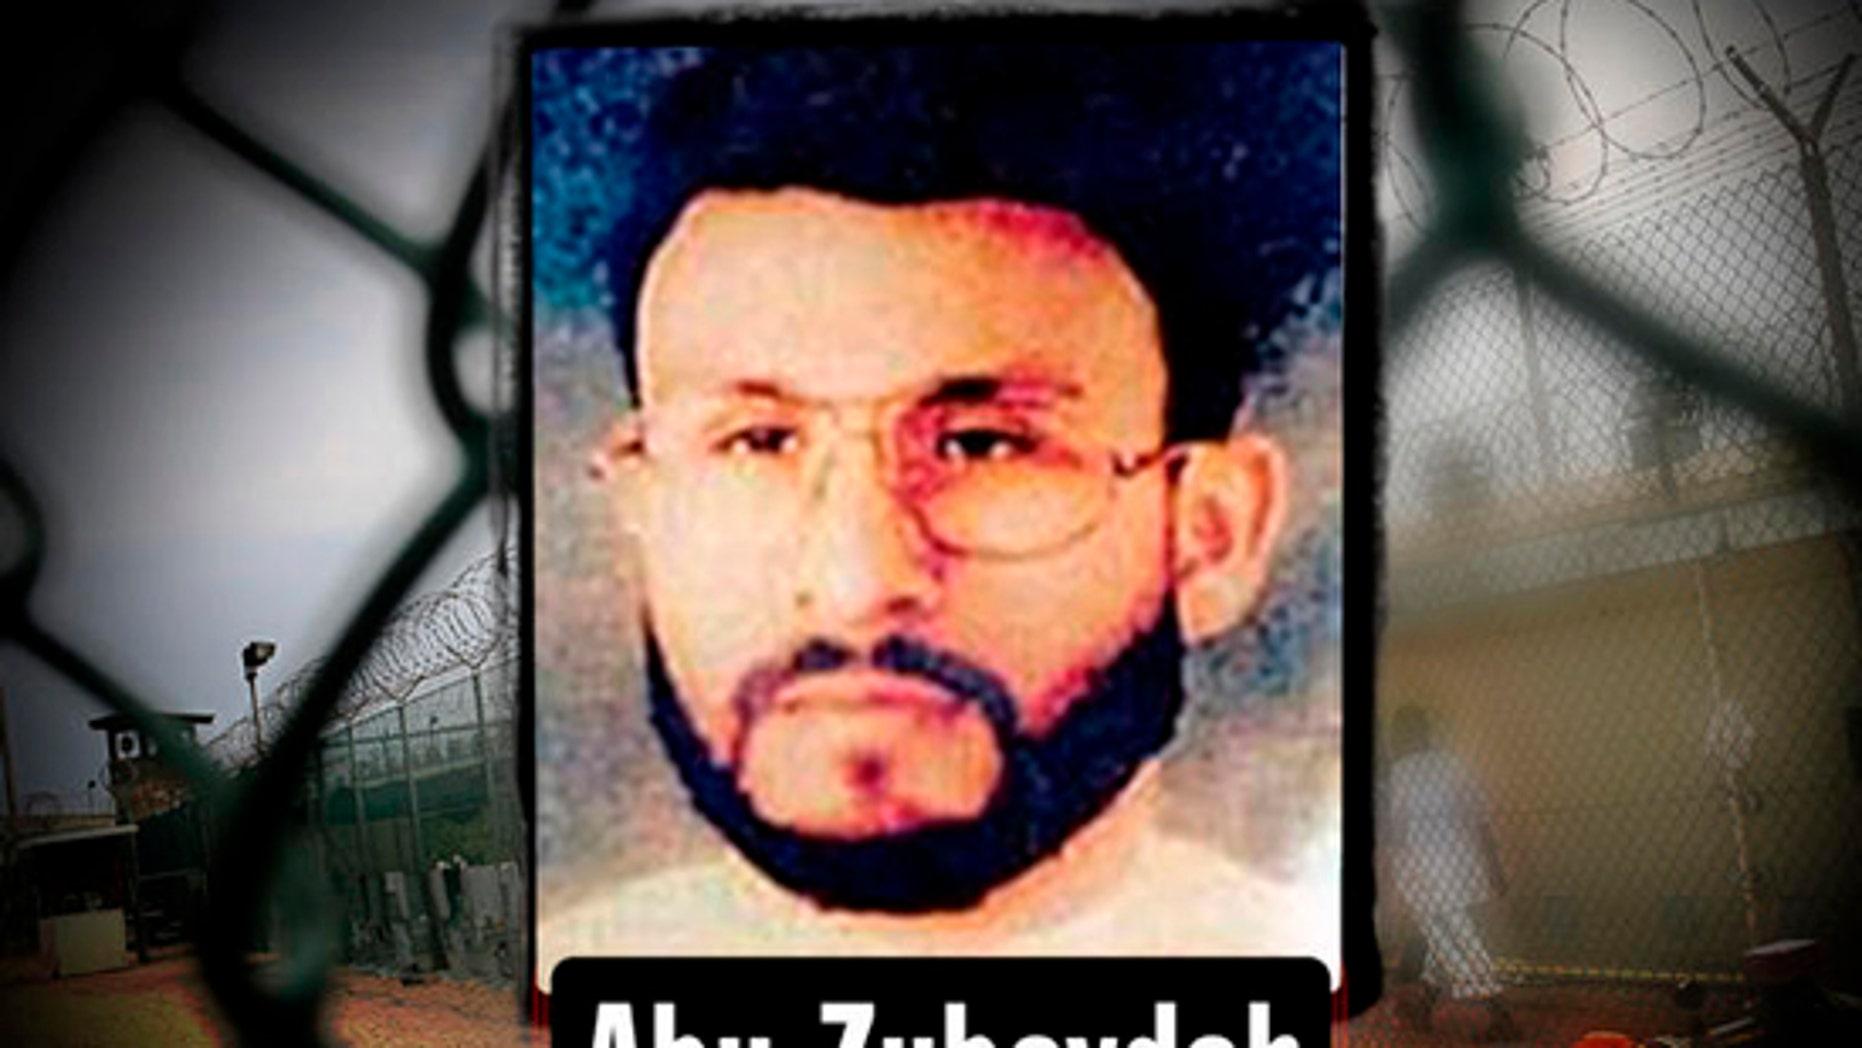 Abu Zubaydah framed headshot, image provided by US Central Command, over Guantanamo Bay US Naval Base, Cuba. (AP)